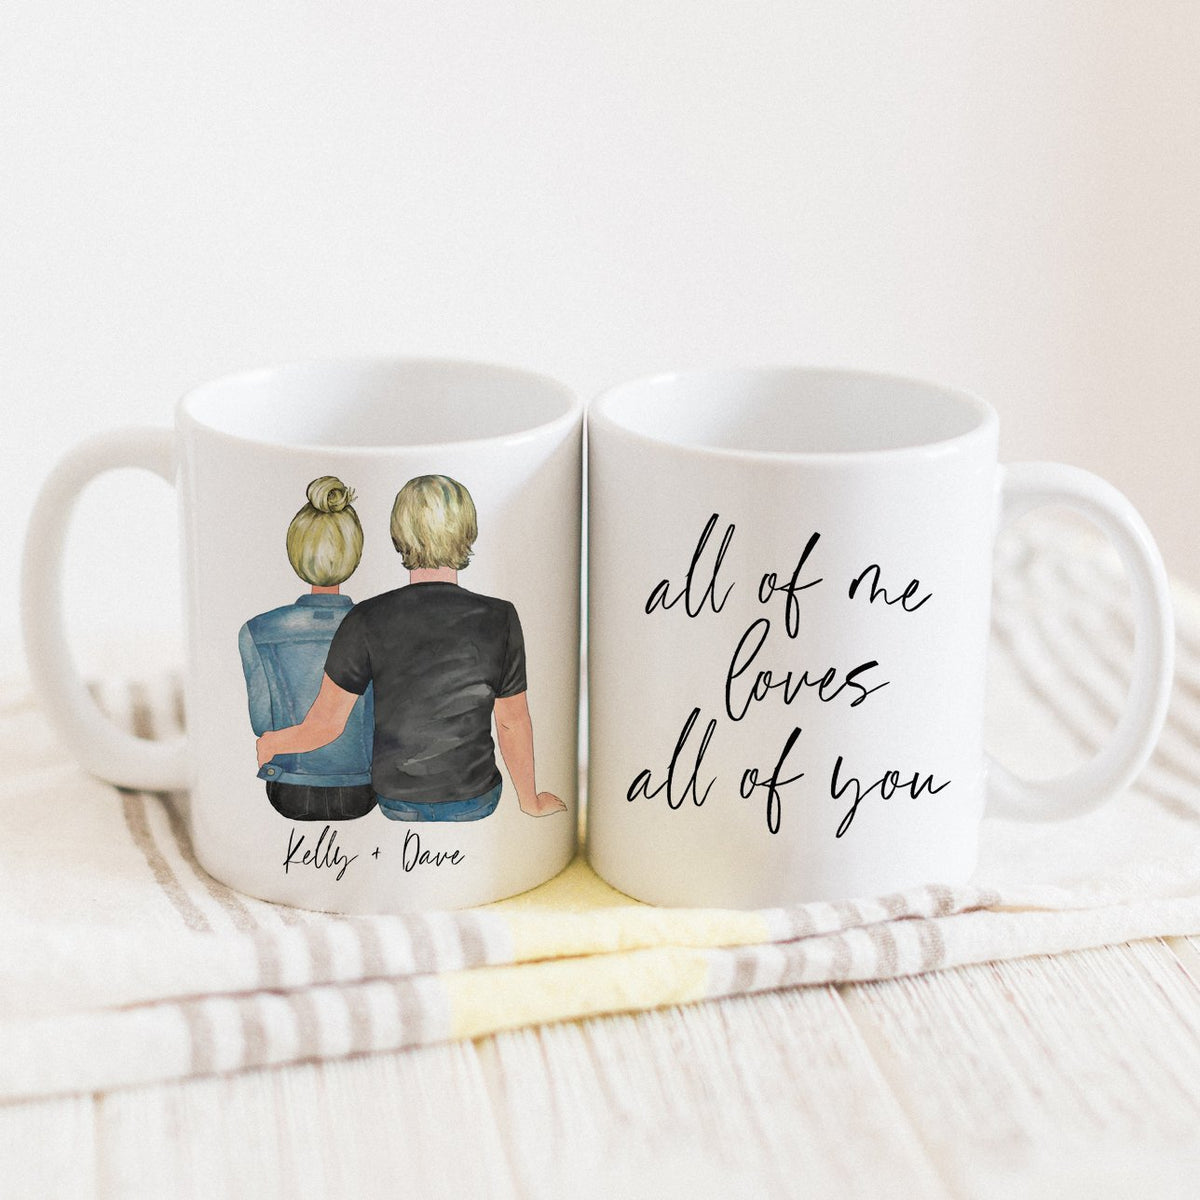 The Couples Mug & Candle Gift Set (Female + Male Version)